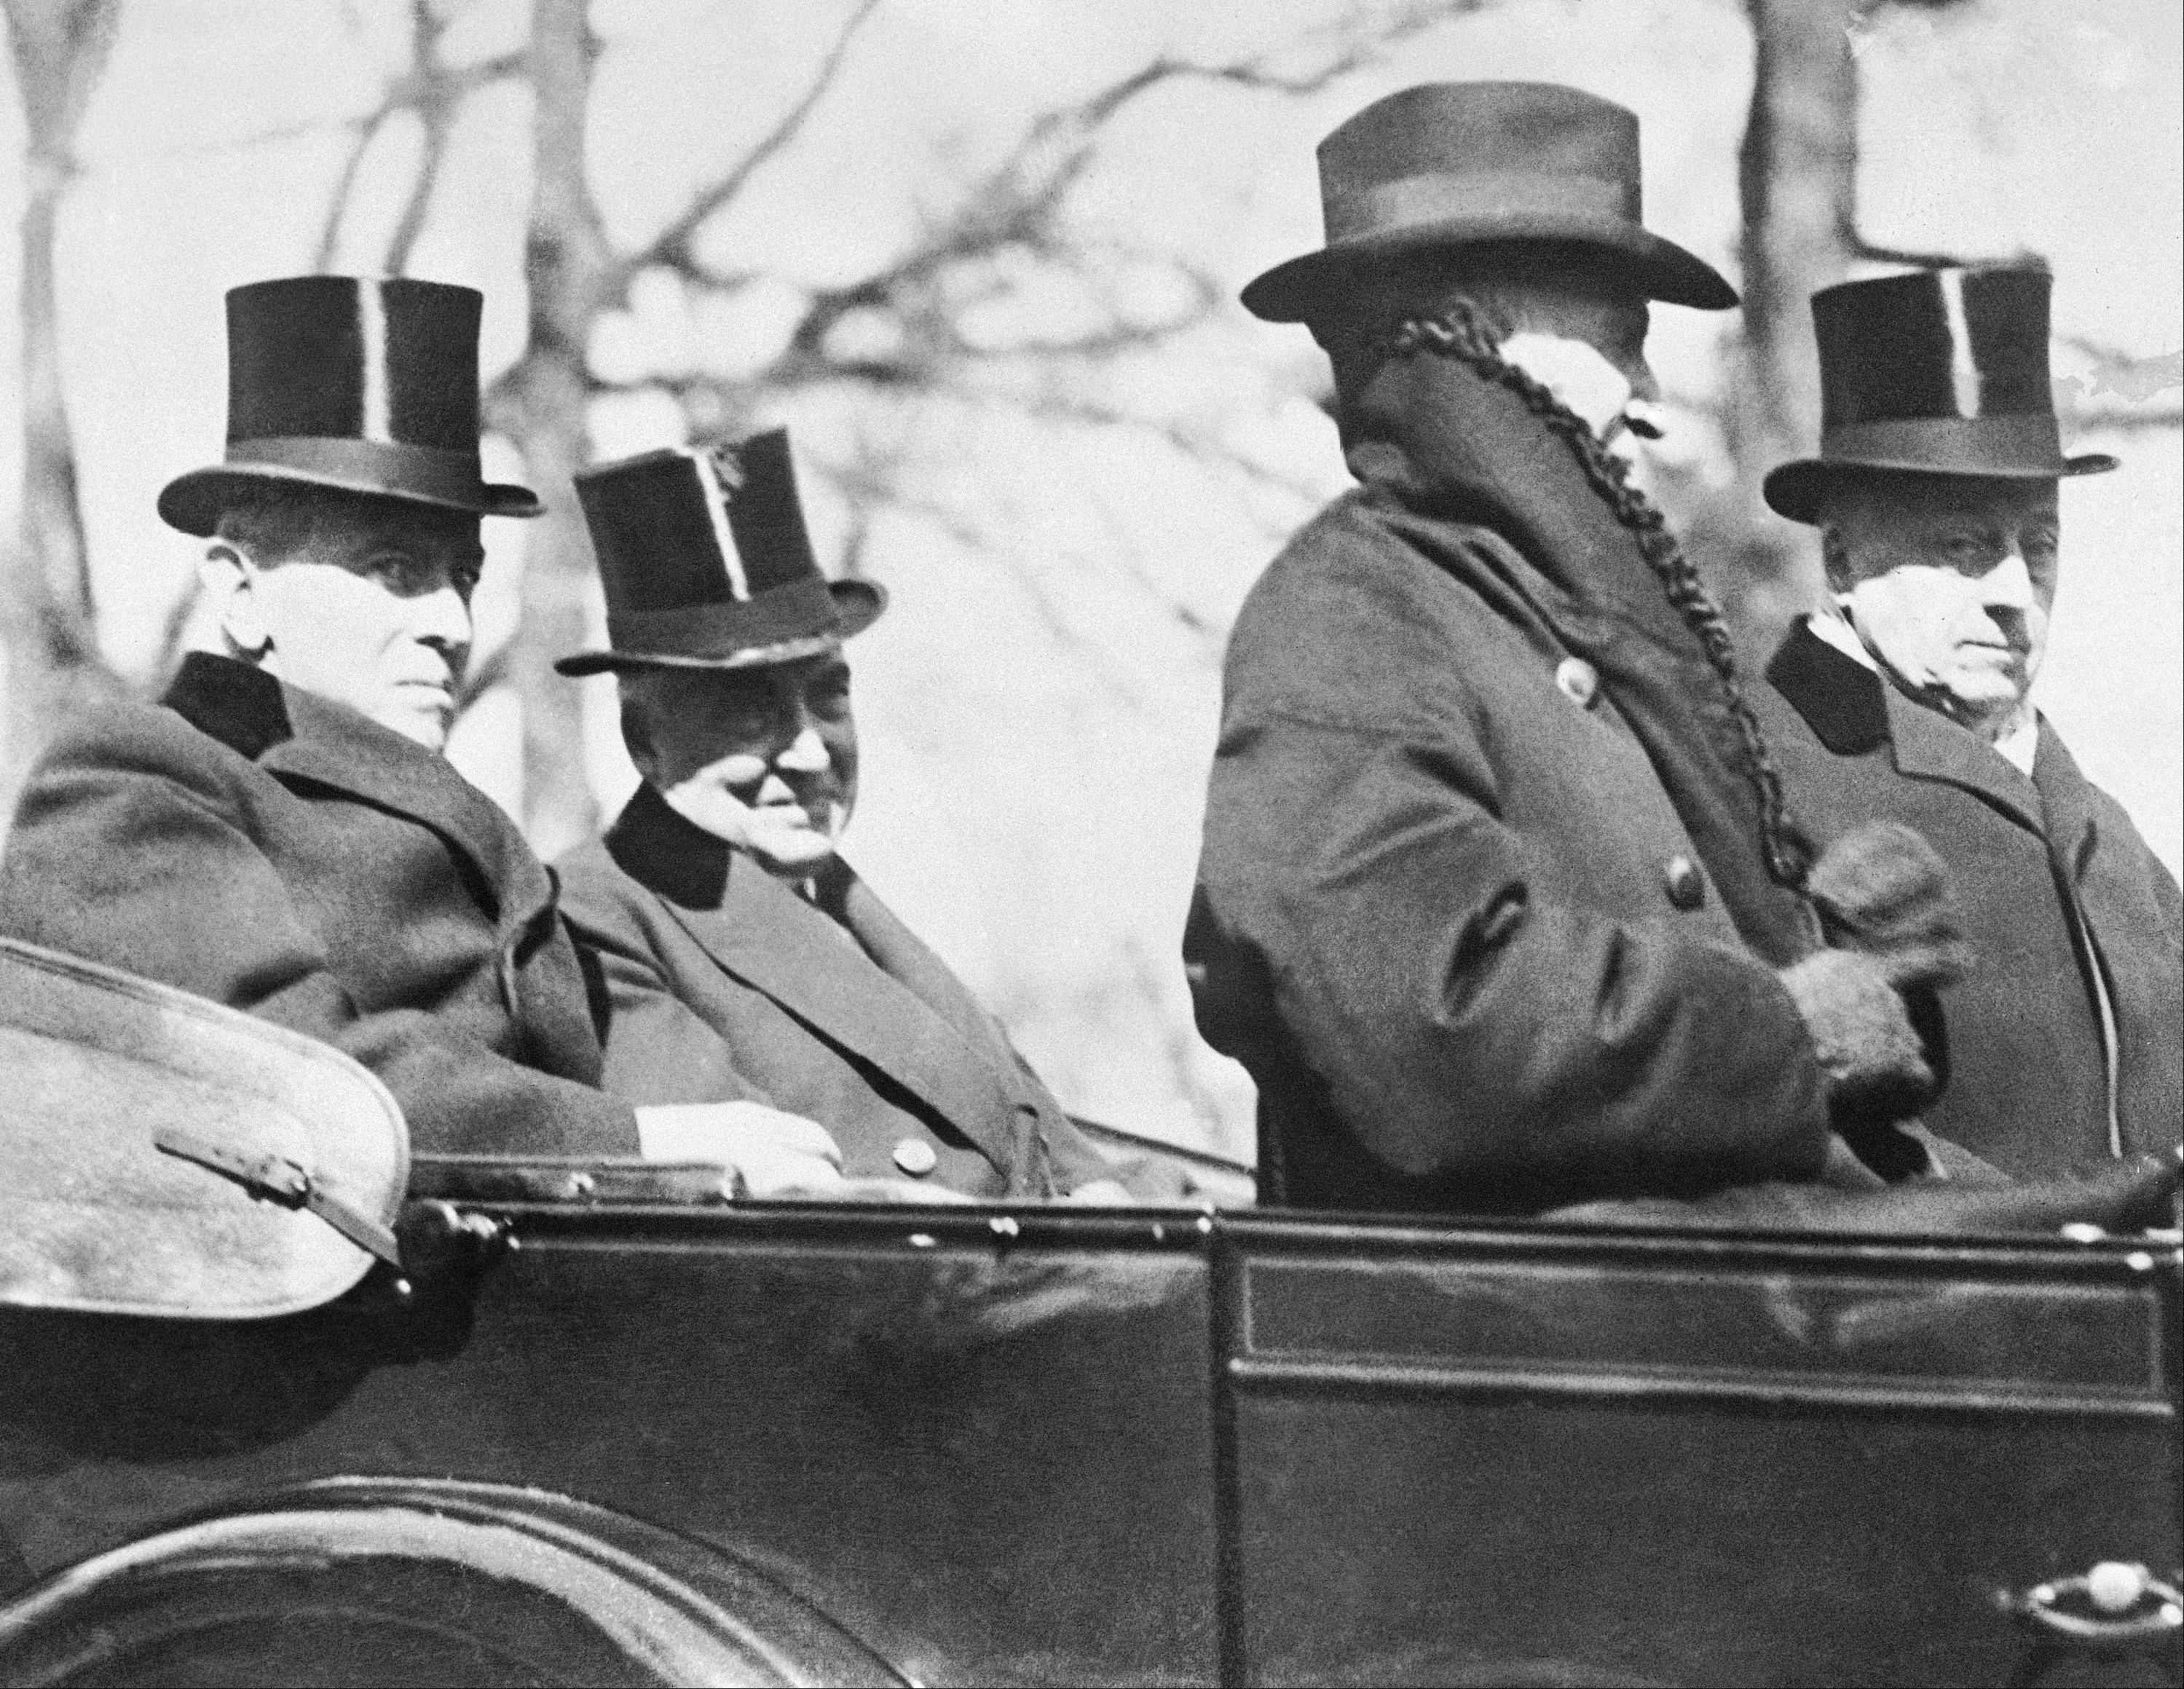 The retiring 28th President Woodrow Wilson, rides with his successor, Warren Gamaliel Harding, to the latter's inauguration, March 4, 1921. Because of his weakened condition, Mr. Wilson was unable to attend the inauguration of his successor.